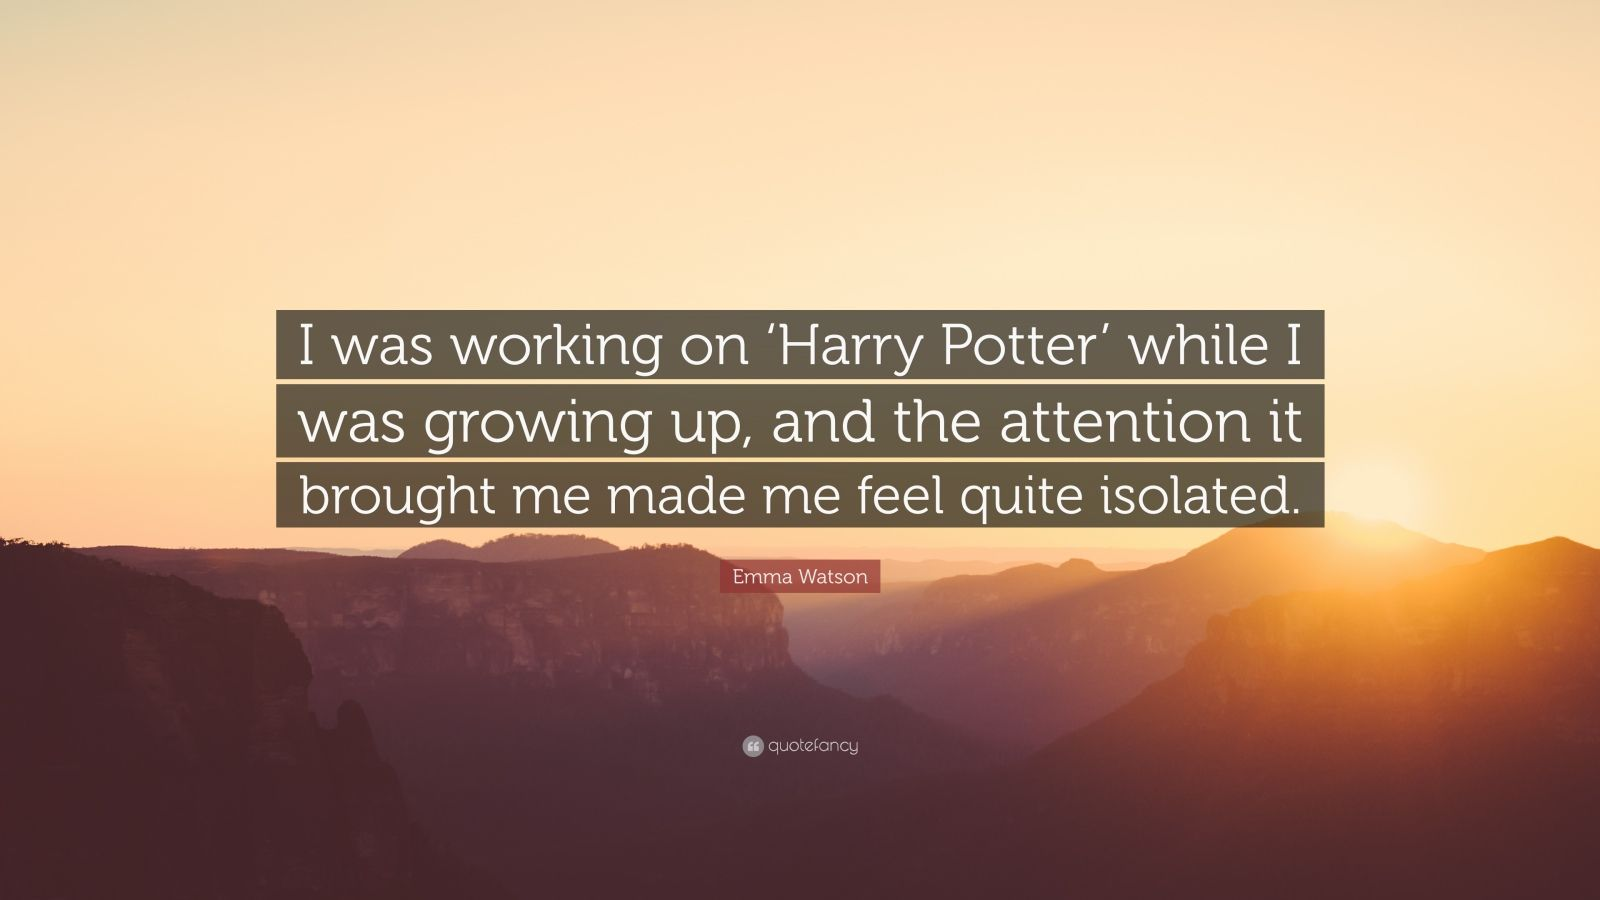 """Emma Watson Quote: """"I was working on 'Harry Potter' while I was growing up, and the attention it brought me made me feel quite isolated."""""""